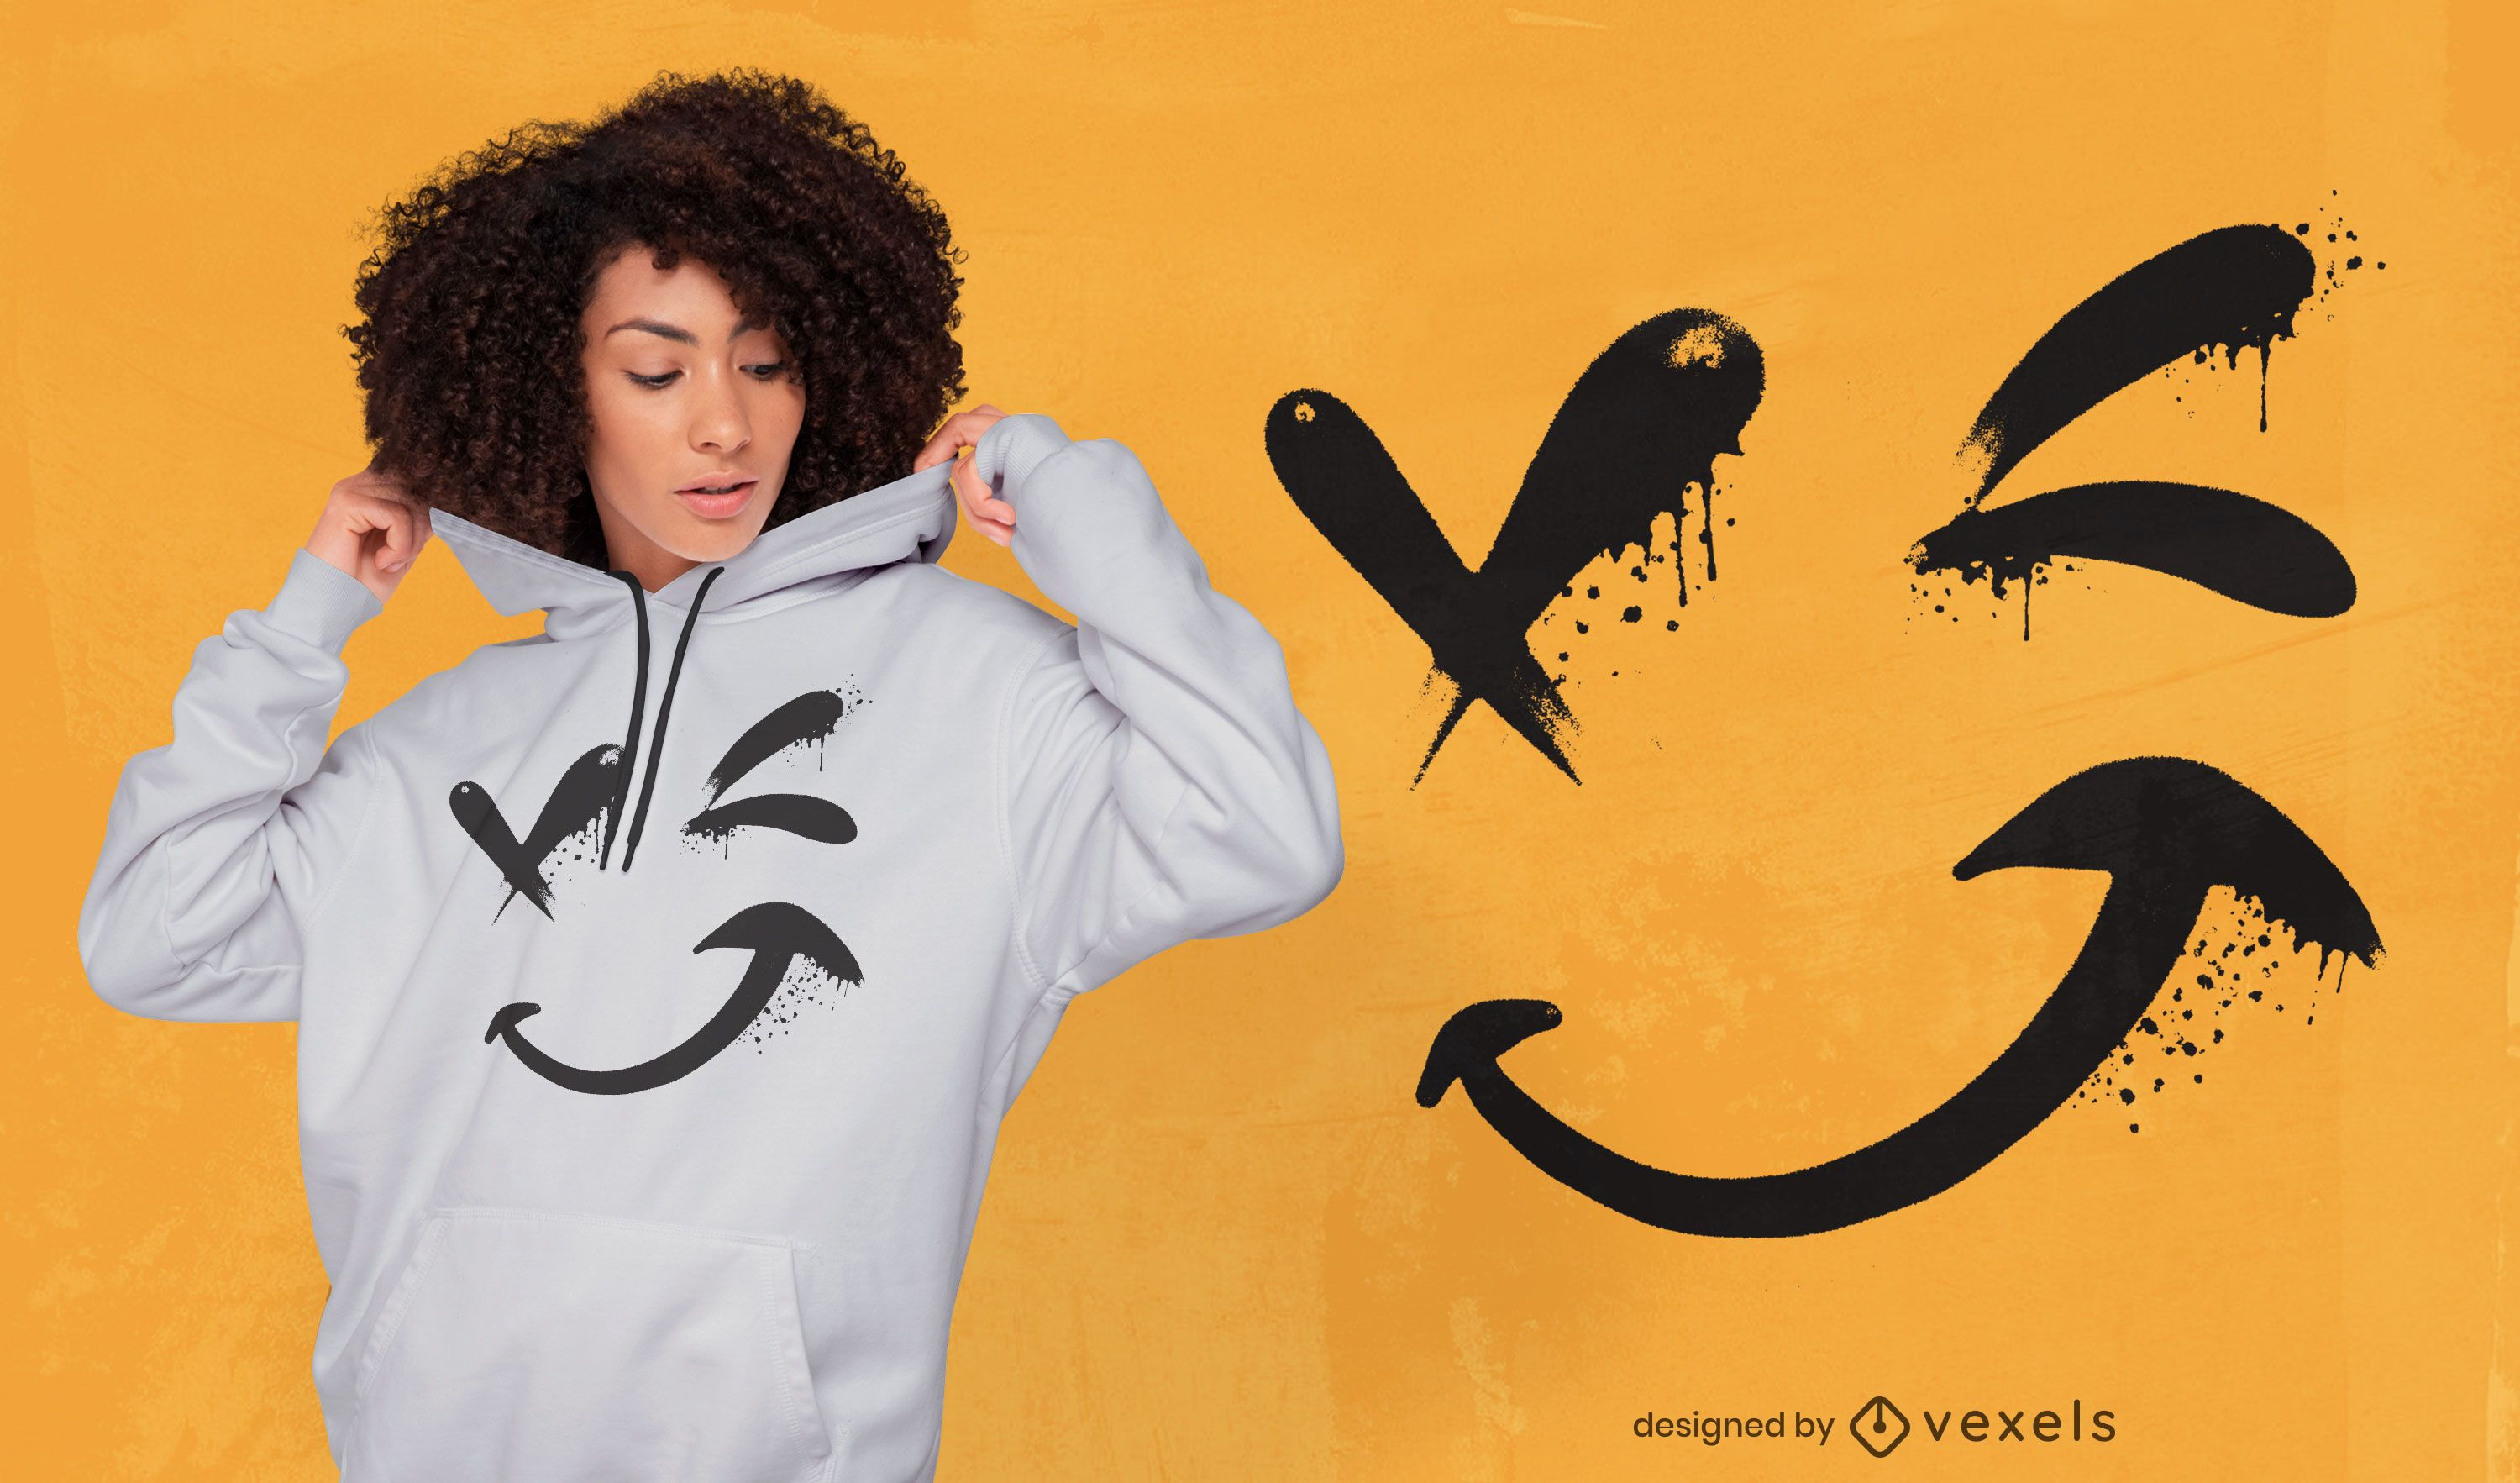 Smiley face winking t-shirt design